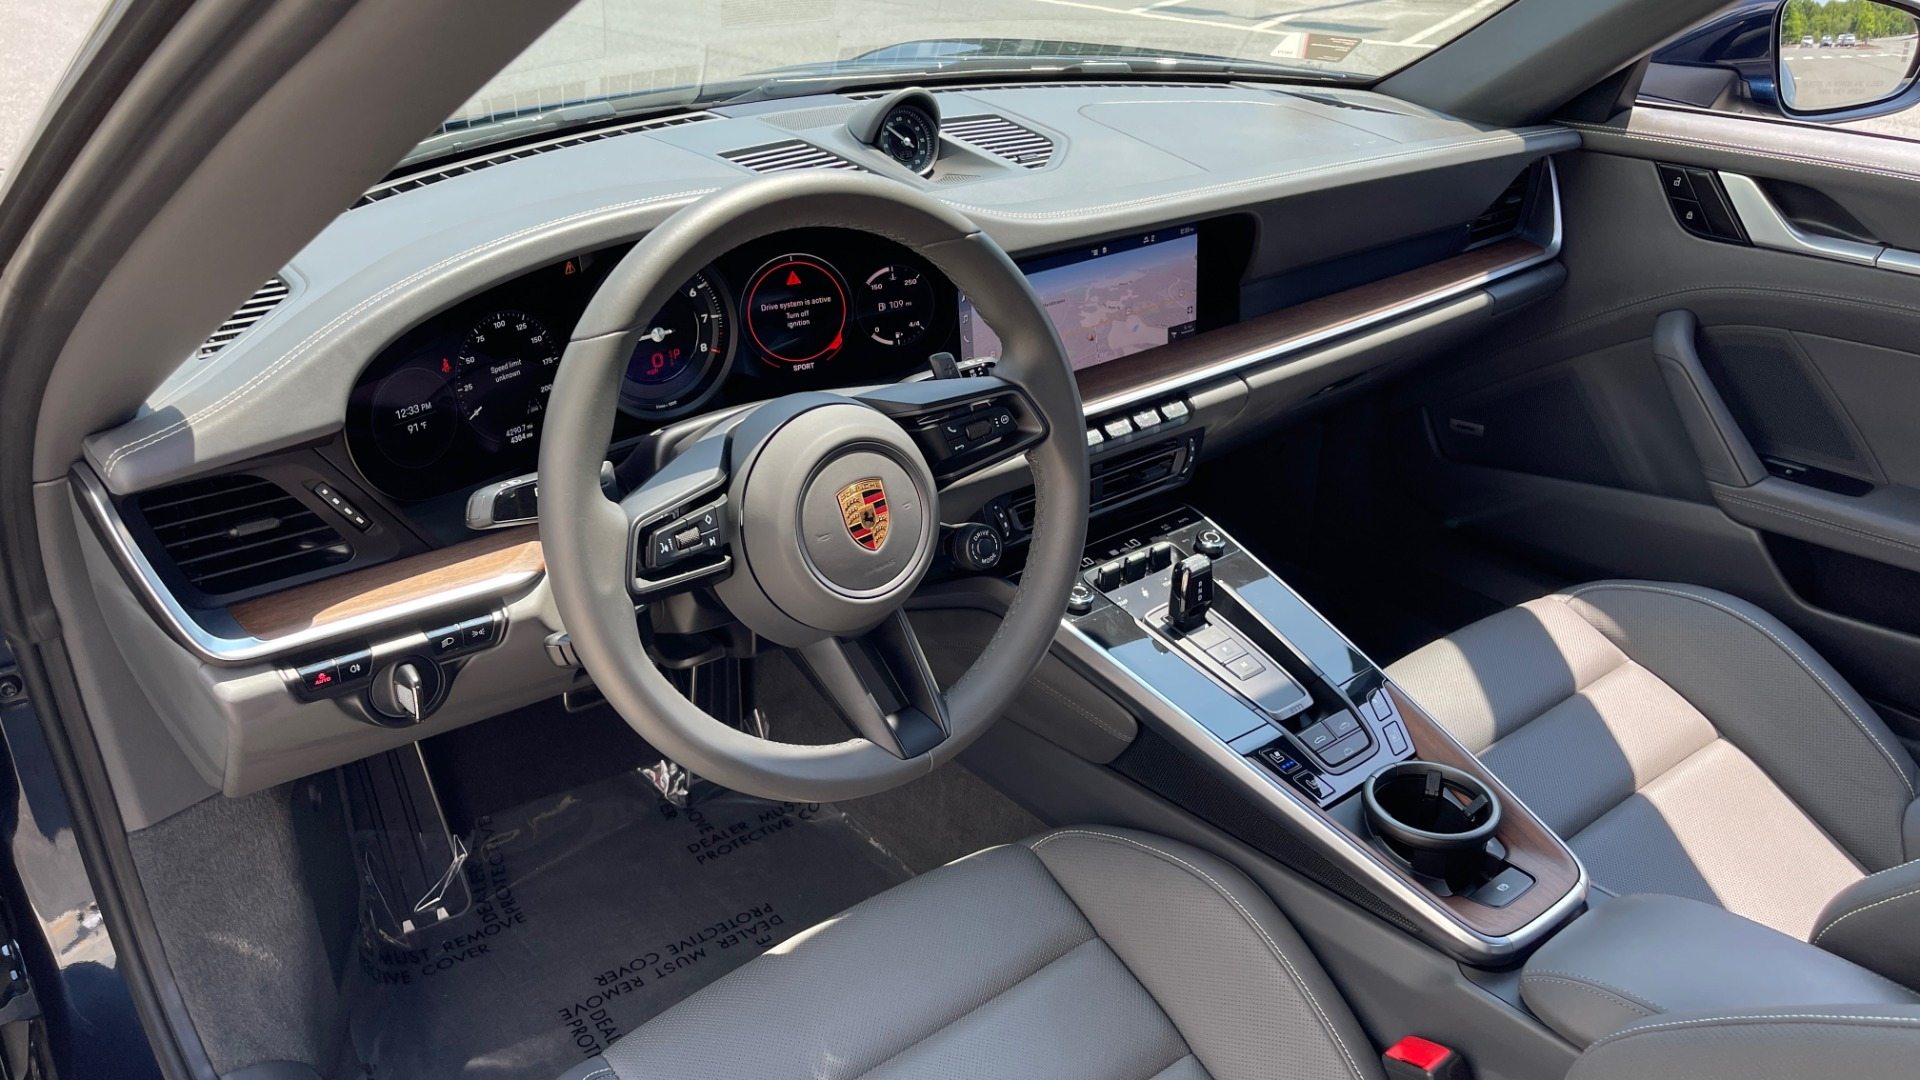 Used 2020 Porsche 911 CARRERA S CABRIOLET PREMIUM SPORT / LCA / ACC / BOSE / REARVIEW for sale $159,995 at Formula Imports in Charlotte NC 28227 76